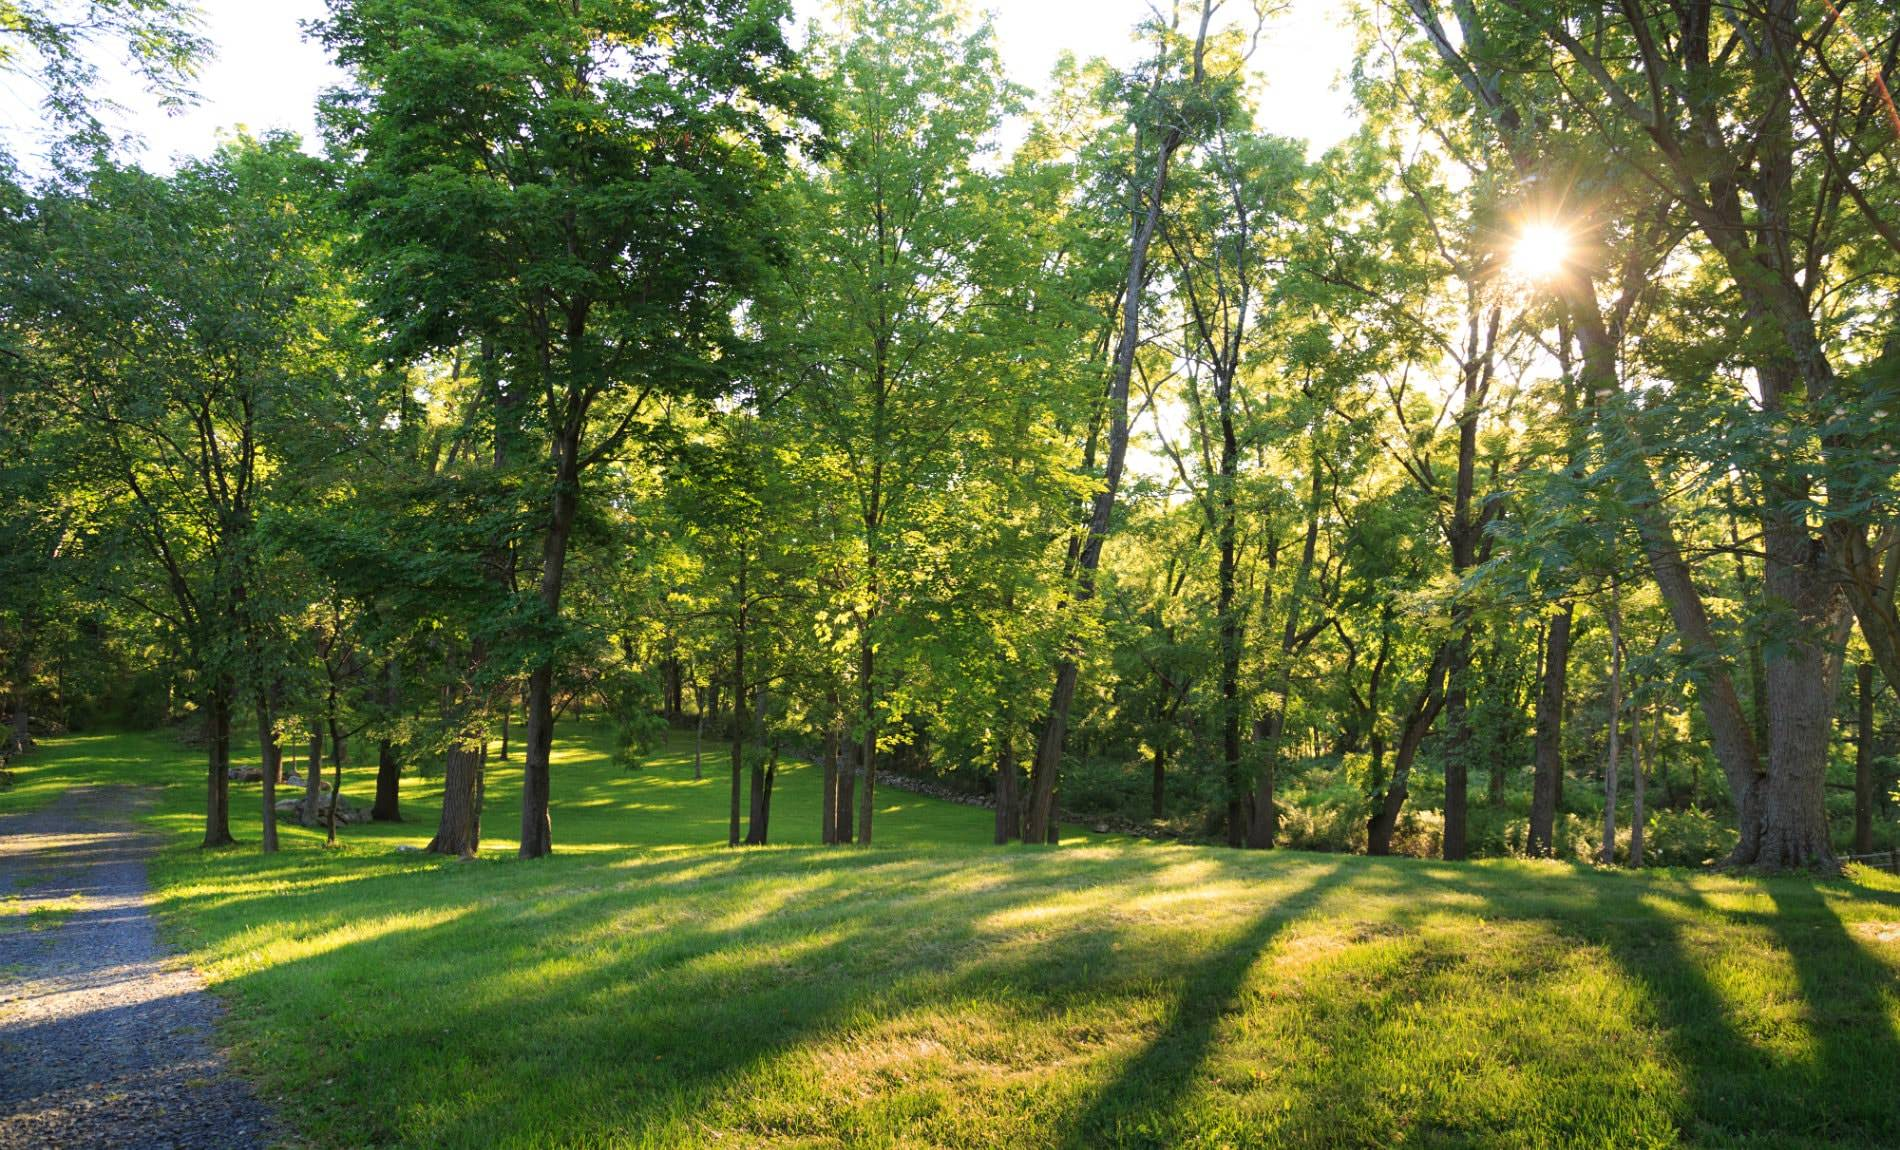 Dirt path alongside a grassy lawn surrounded by green trees with the sun peaking through